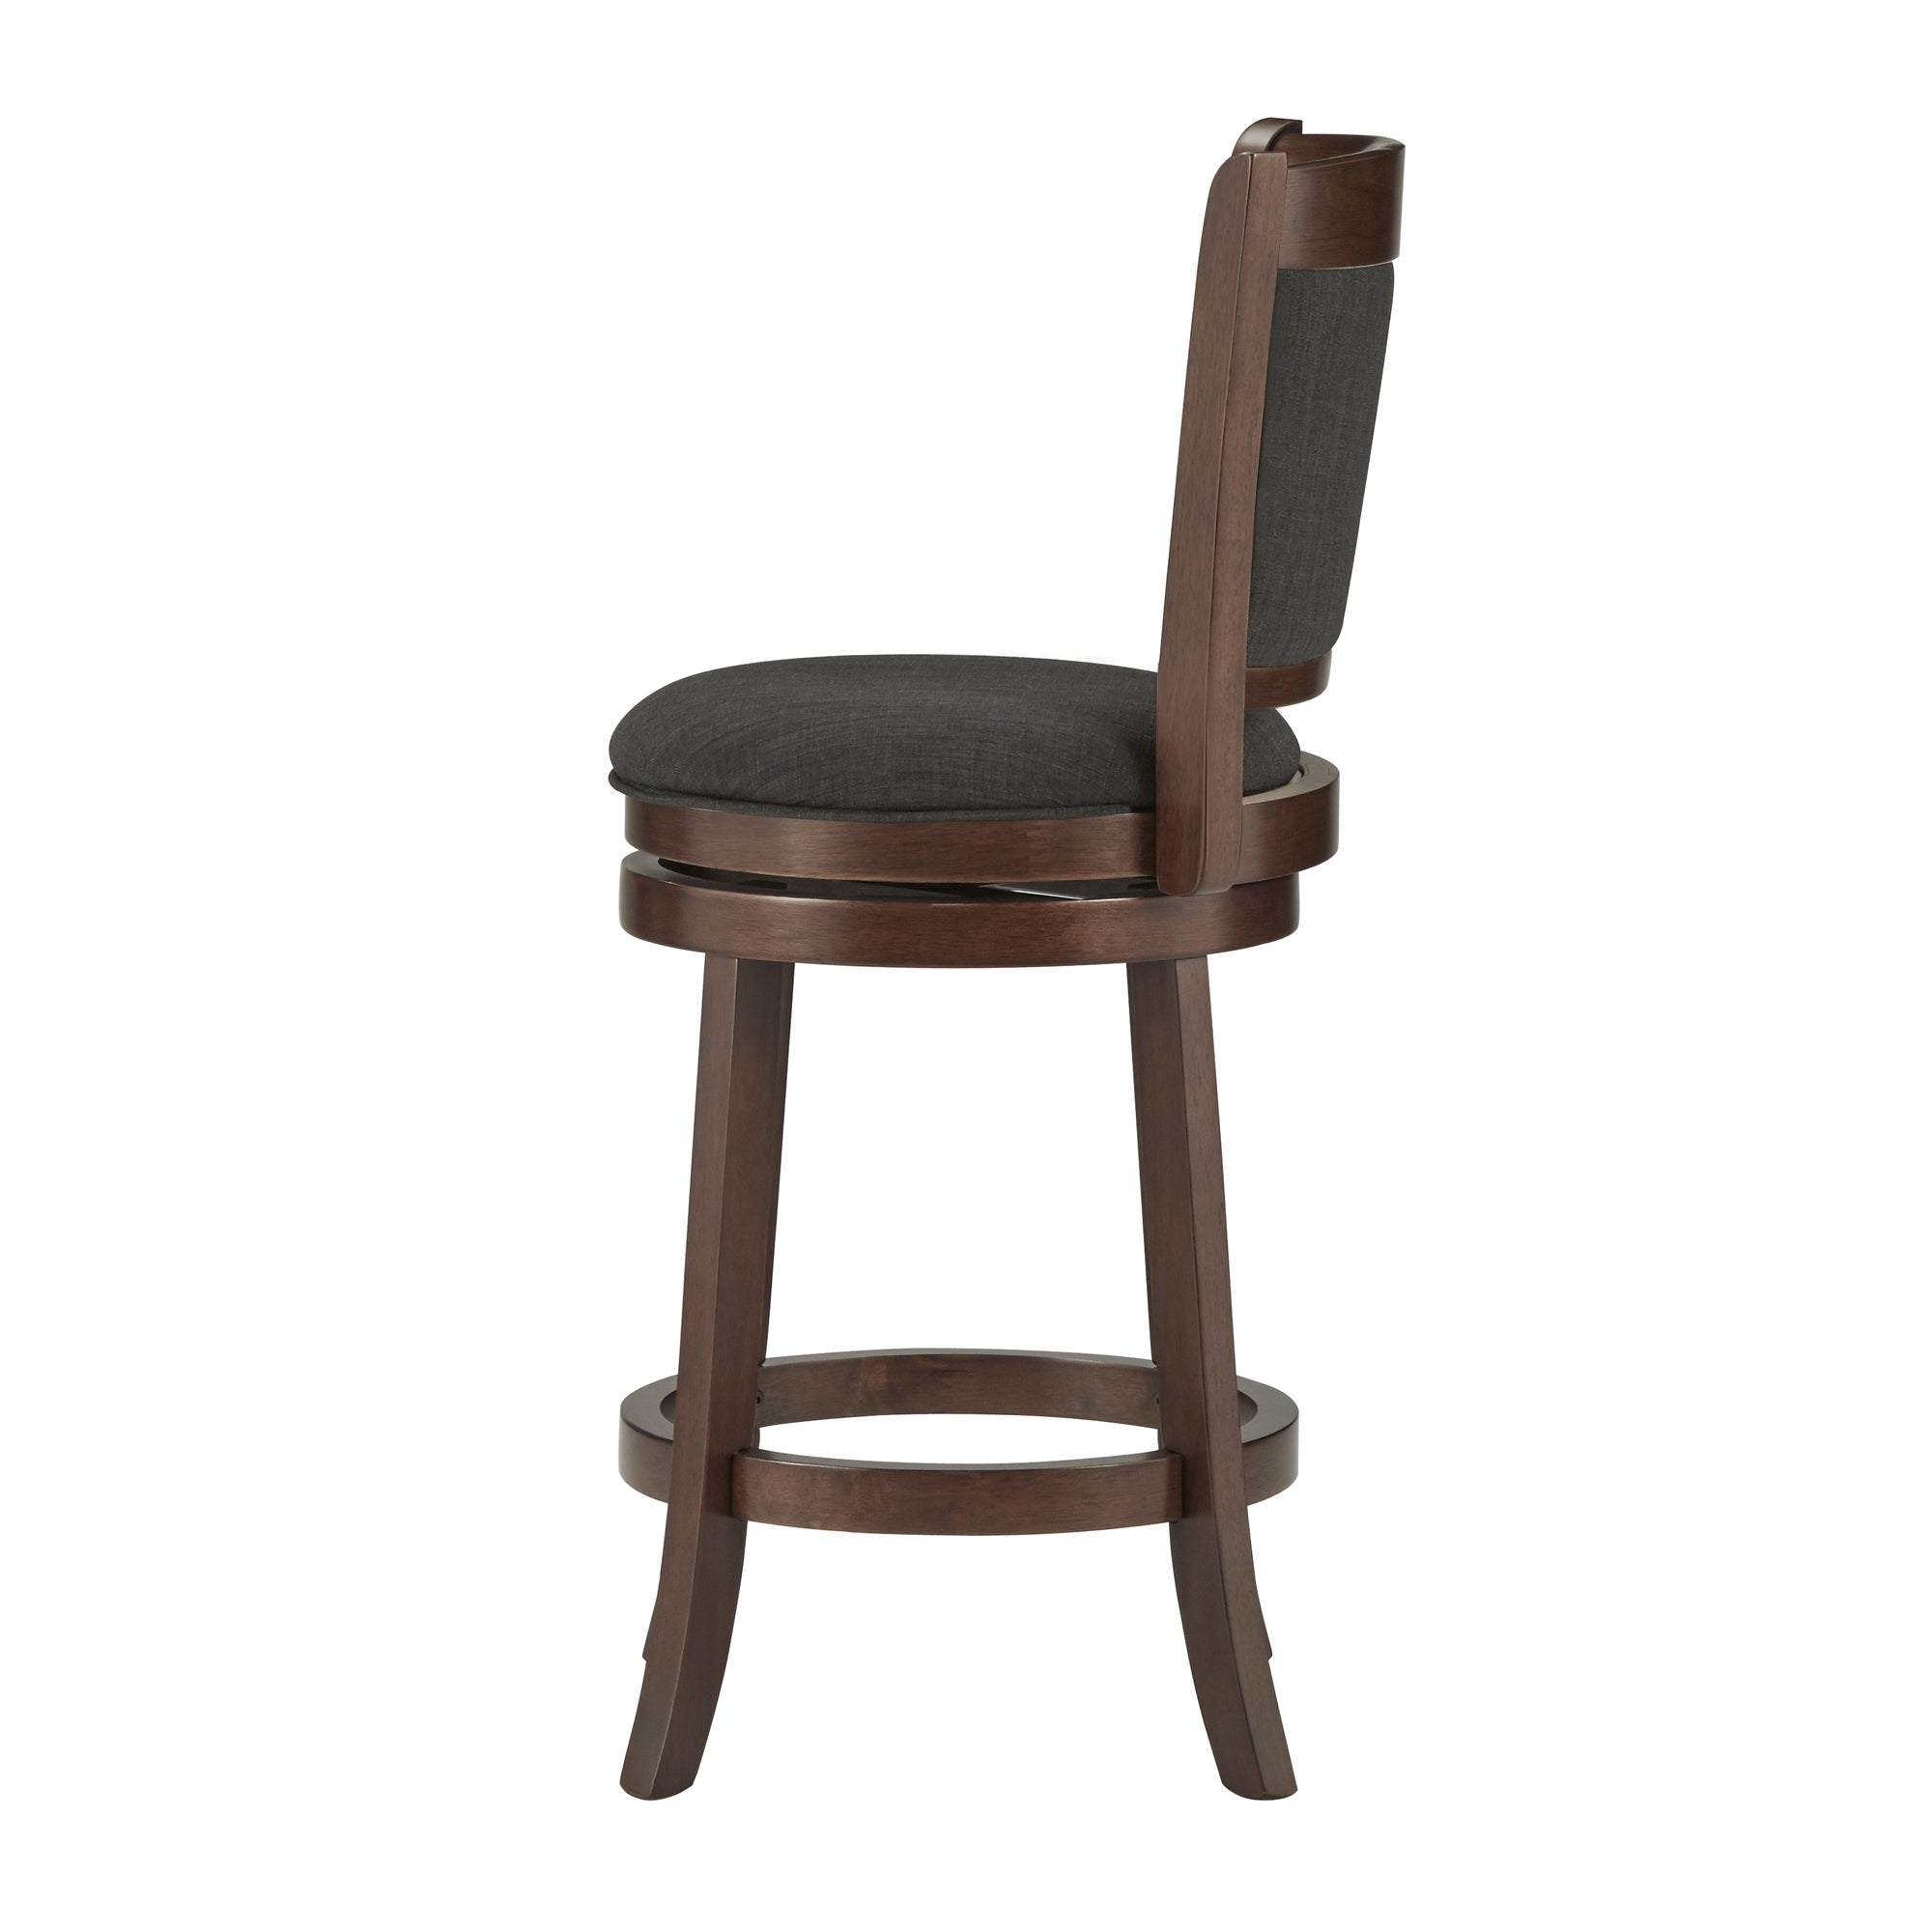 new from height high with elm adjustable west stylish bar backs back stool furniture swivel regard kitchen to industrial stools